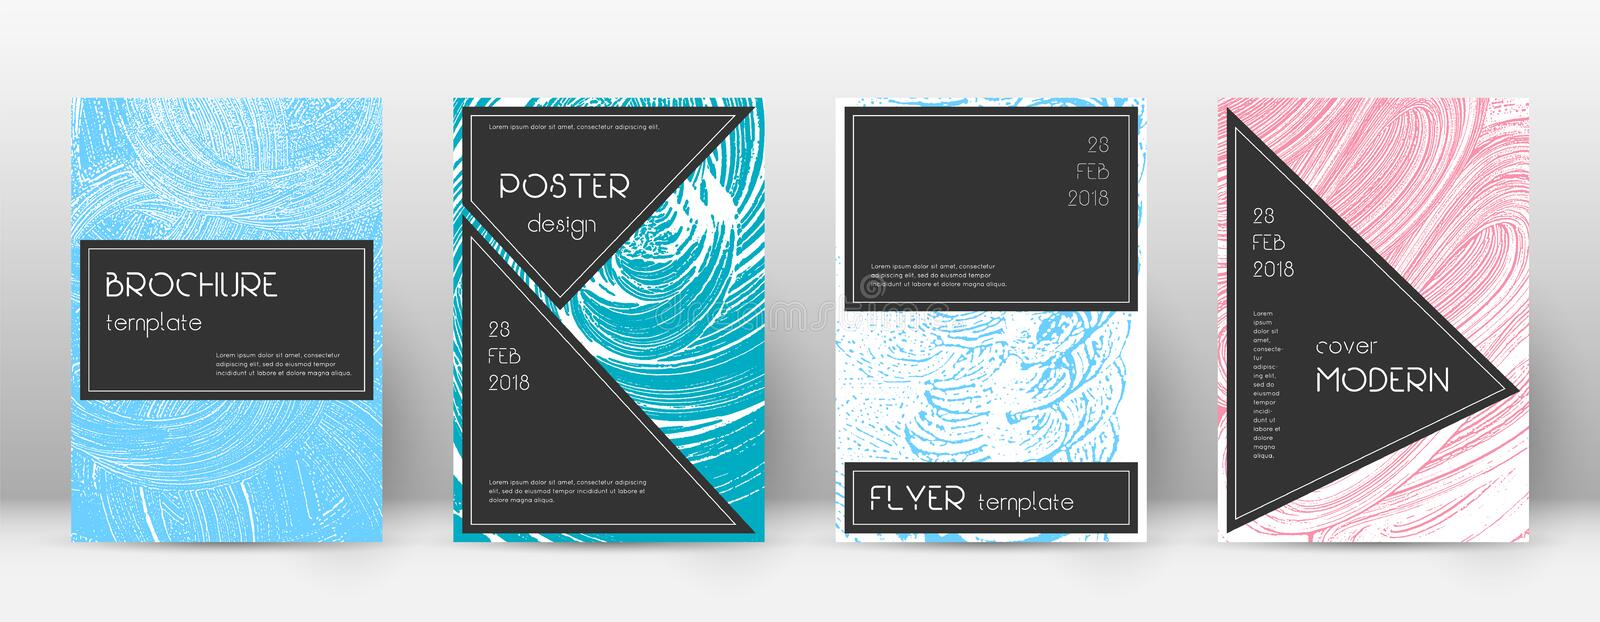 Cover page design template. Black brochure layout. Awesome trendy abstract cover page. royalty free illustration